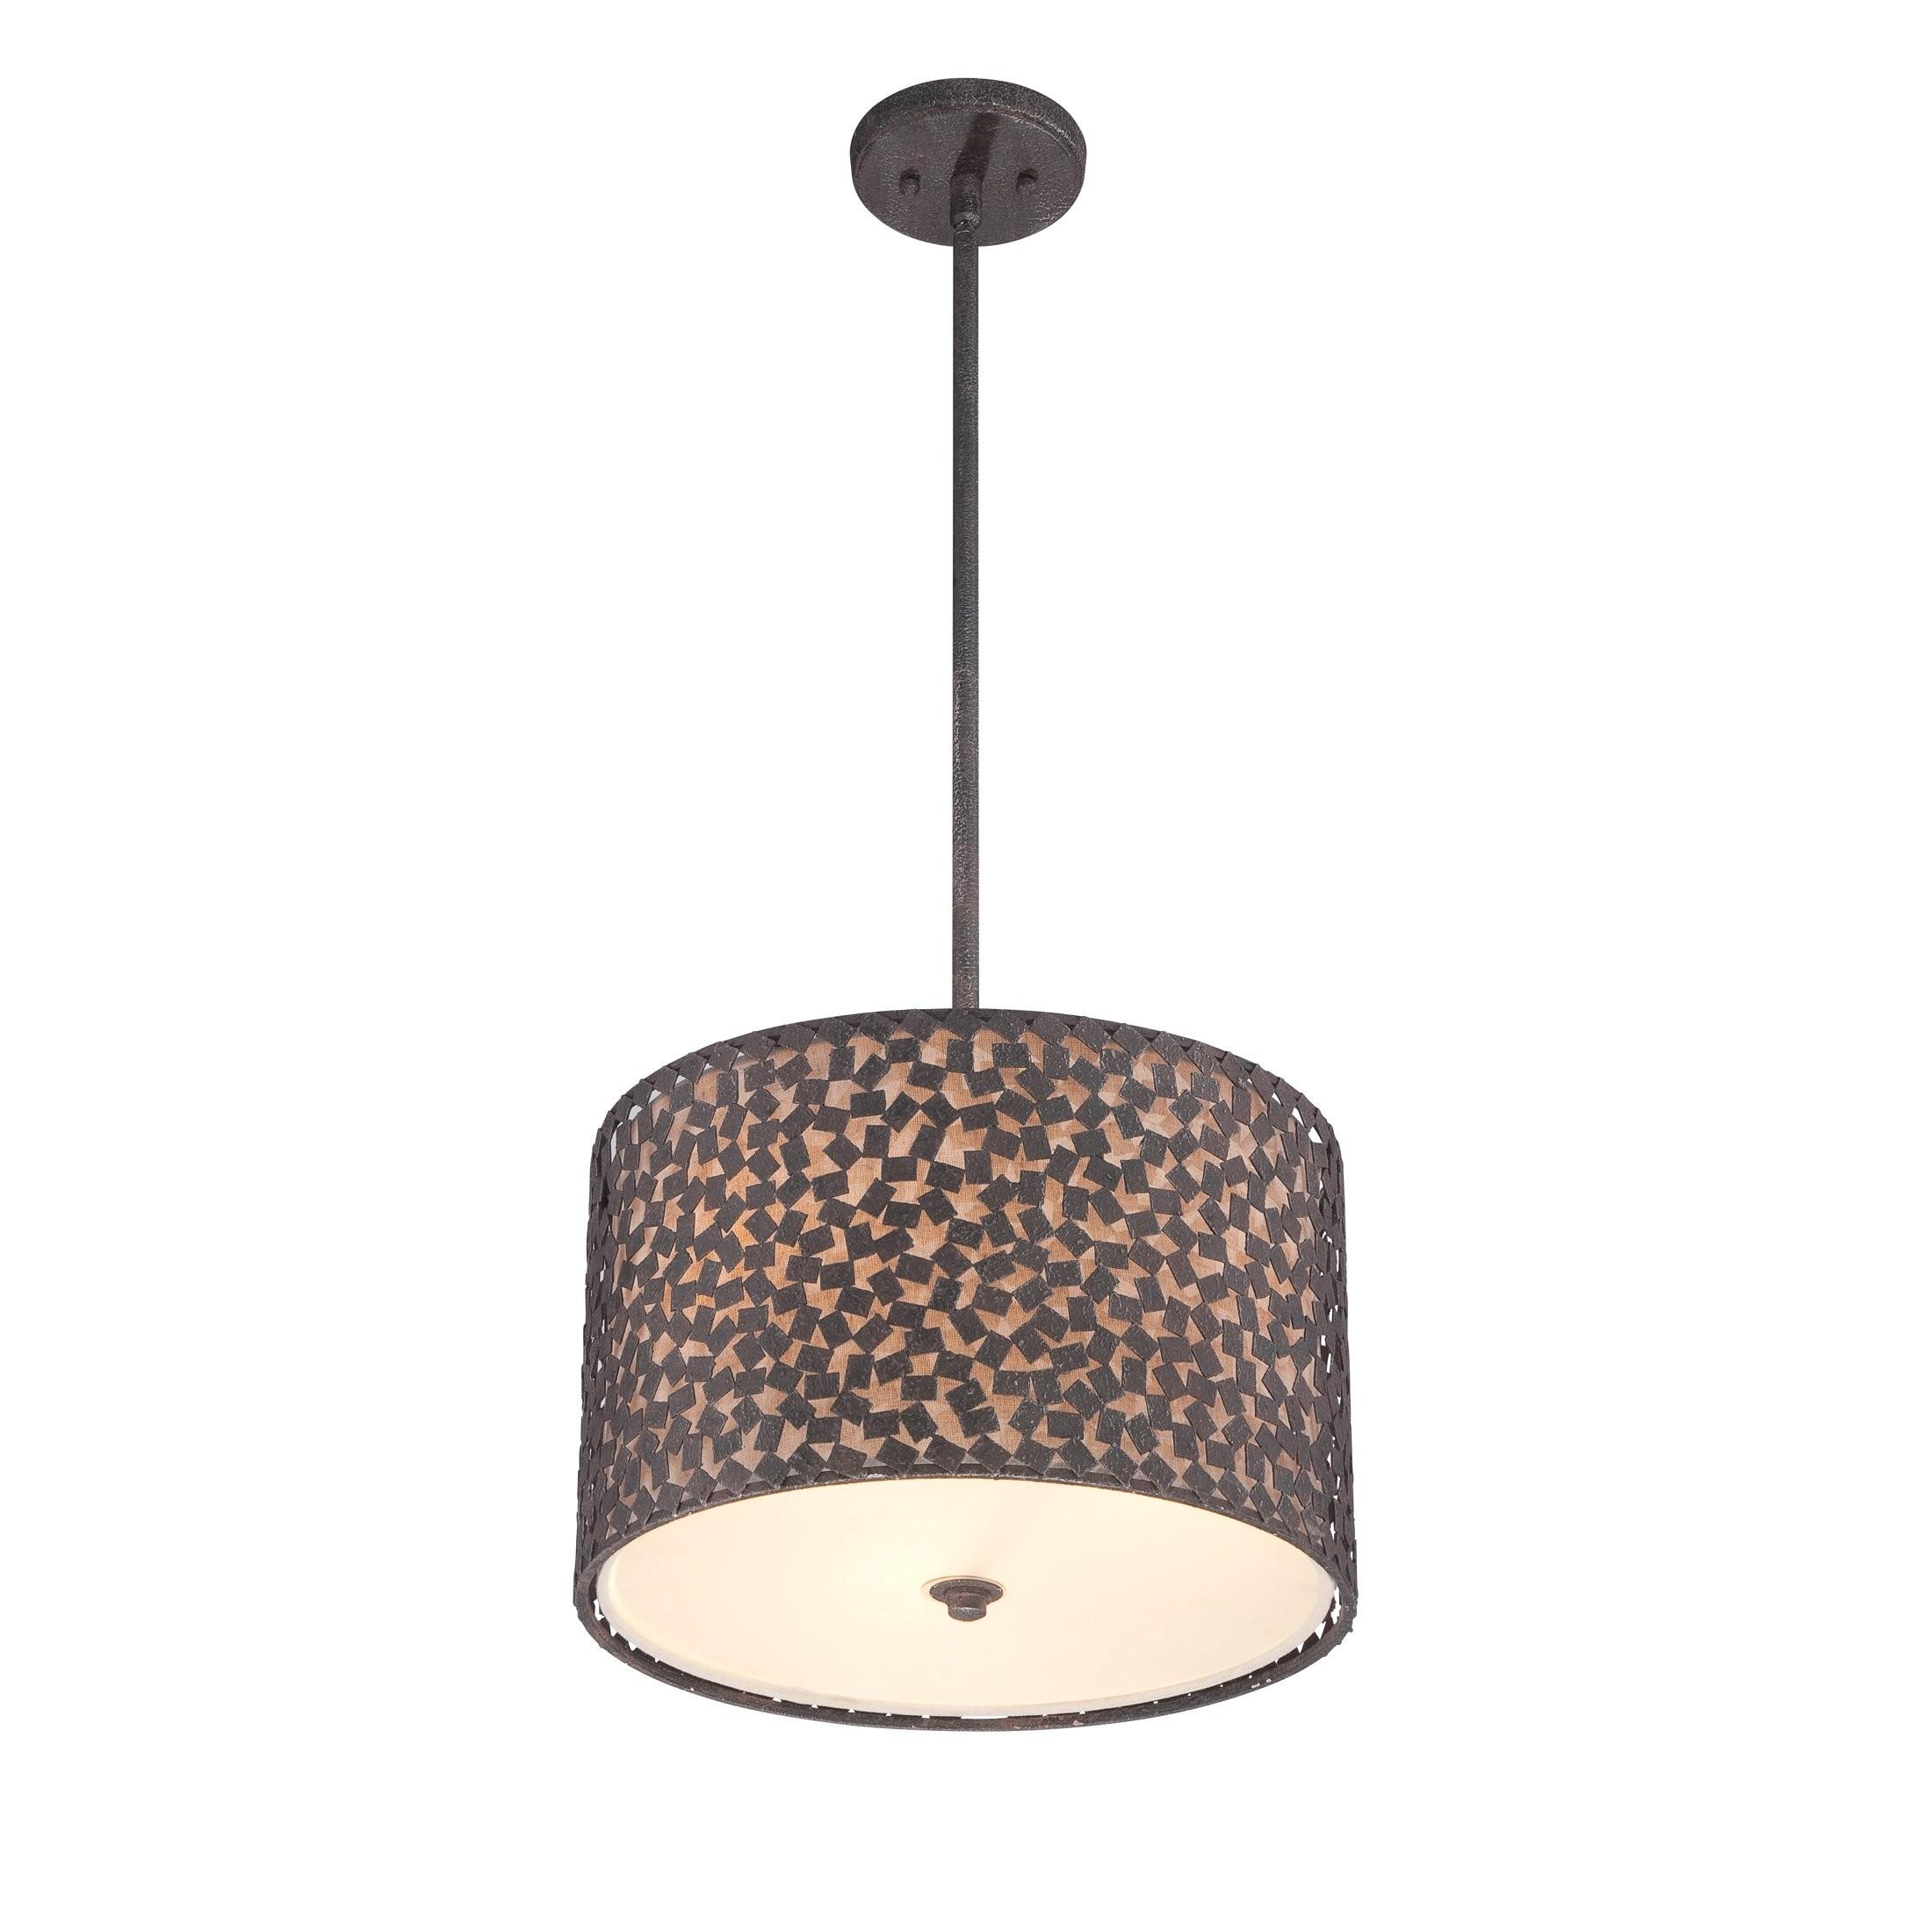 Mercer41 Whitby Light Drum Pendant